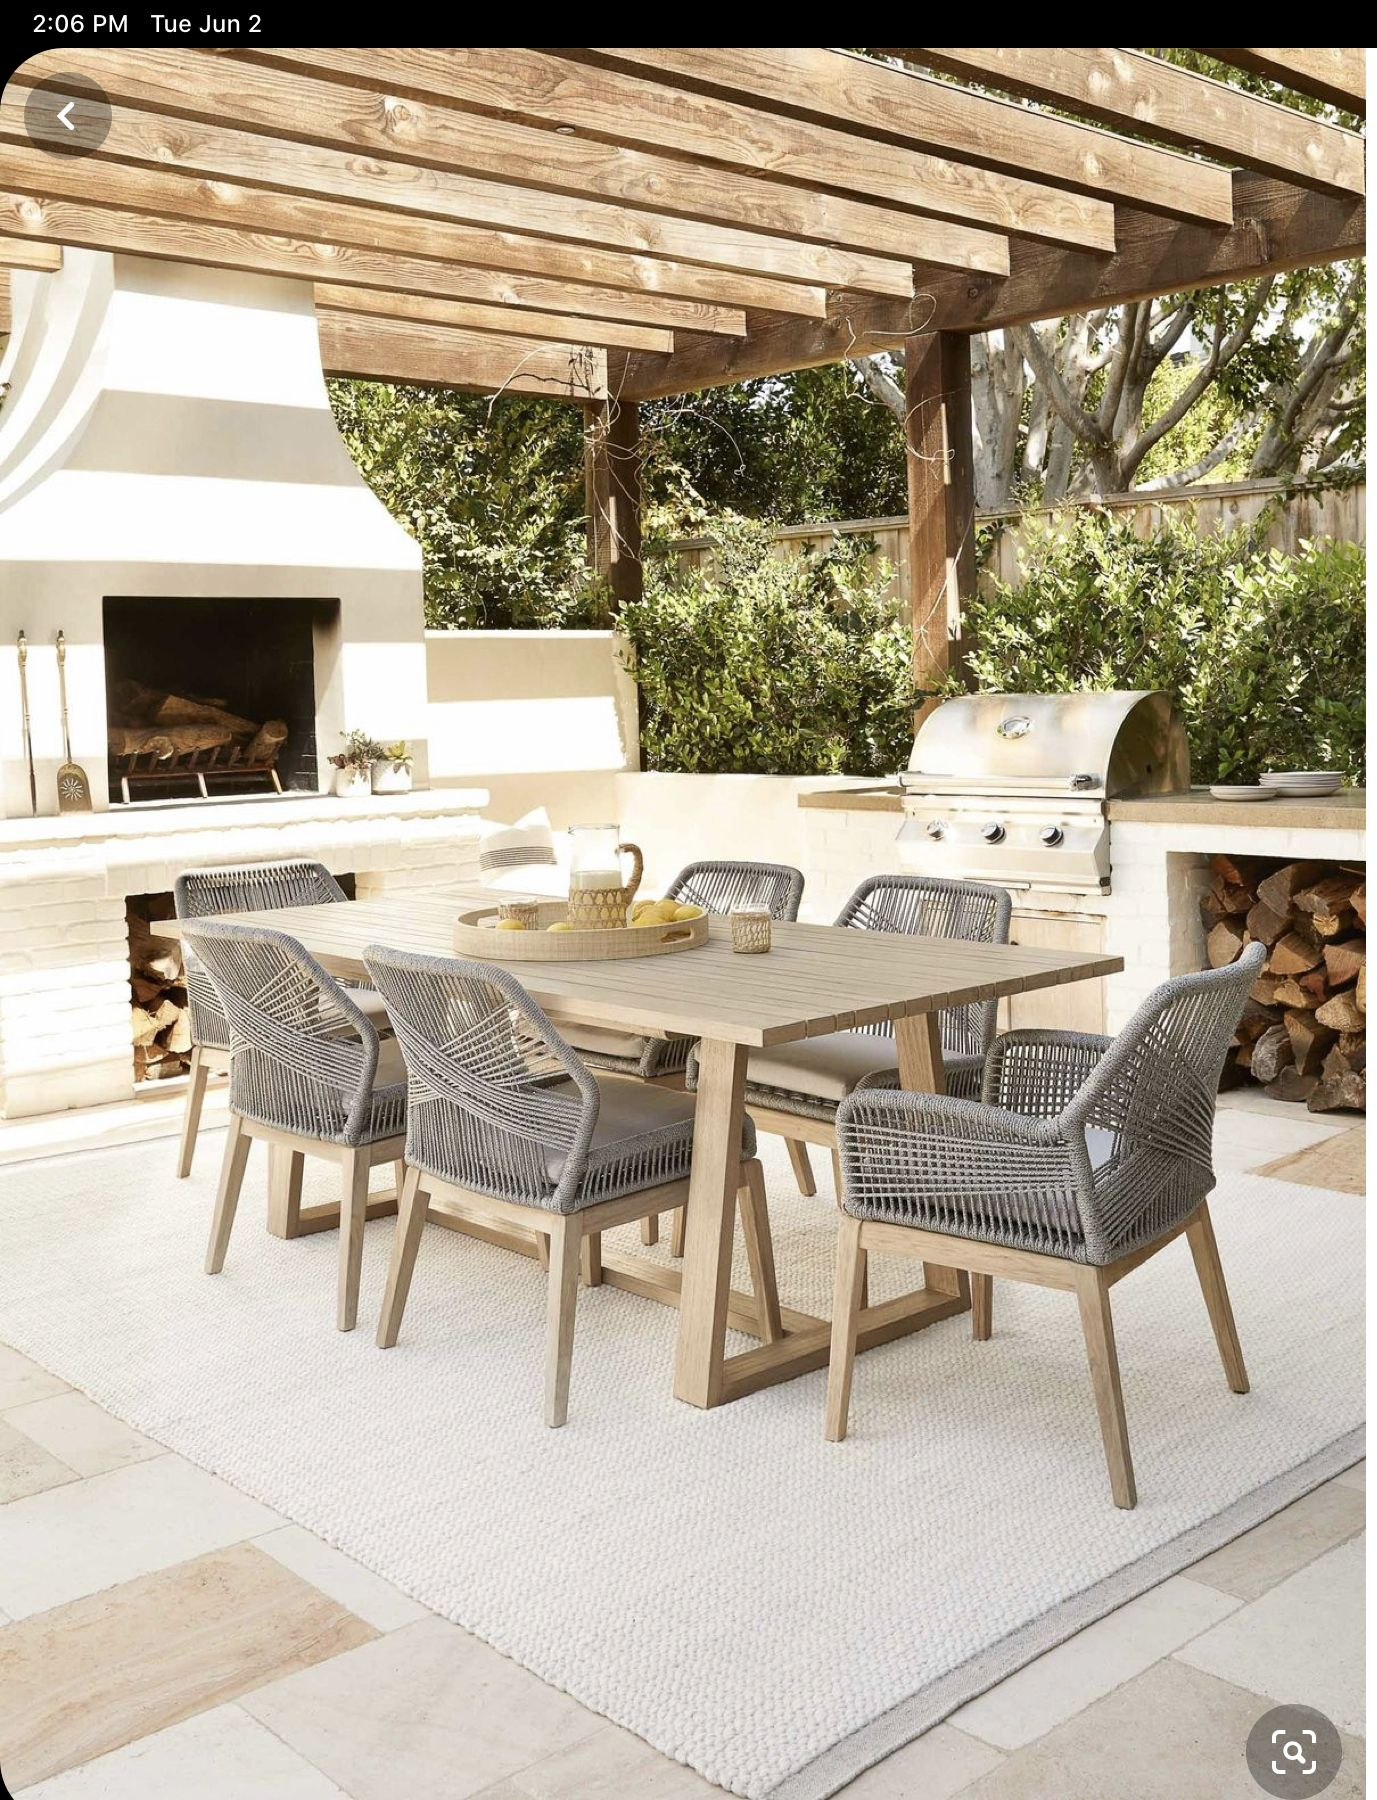 Pin By Lauren Candea On Mccarty In 2020 Outdoor Living Decor